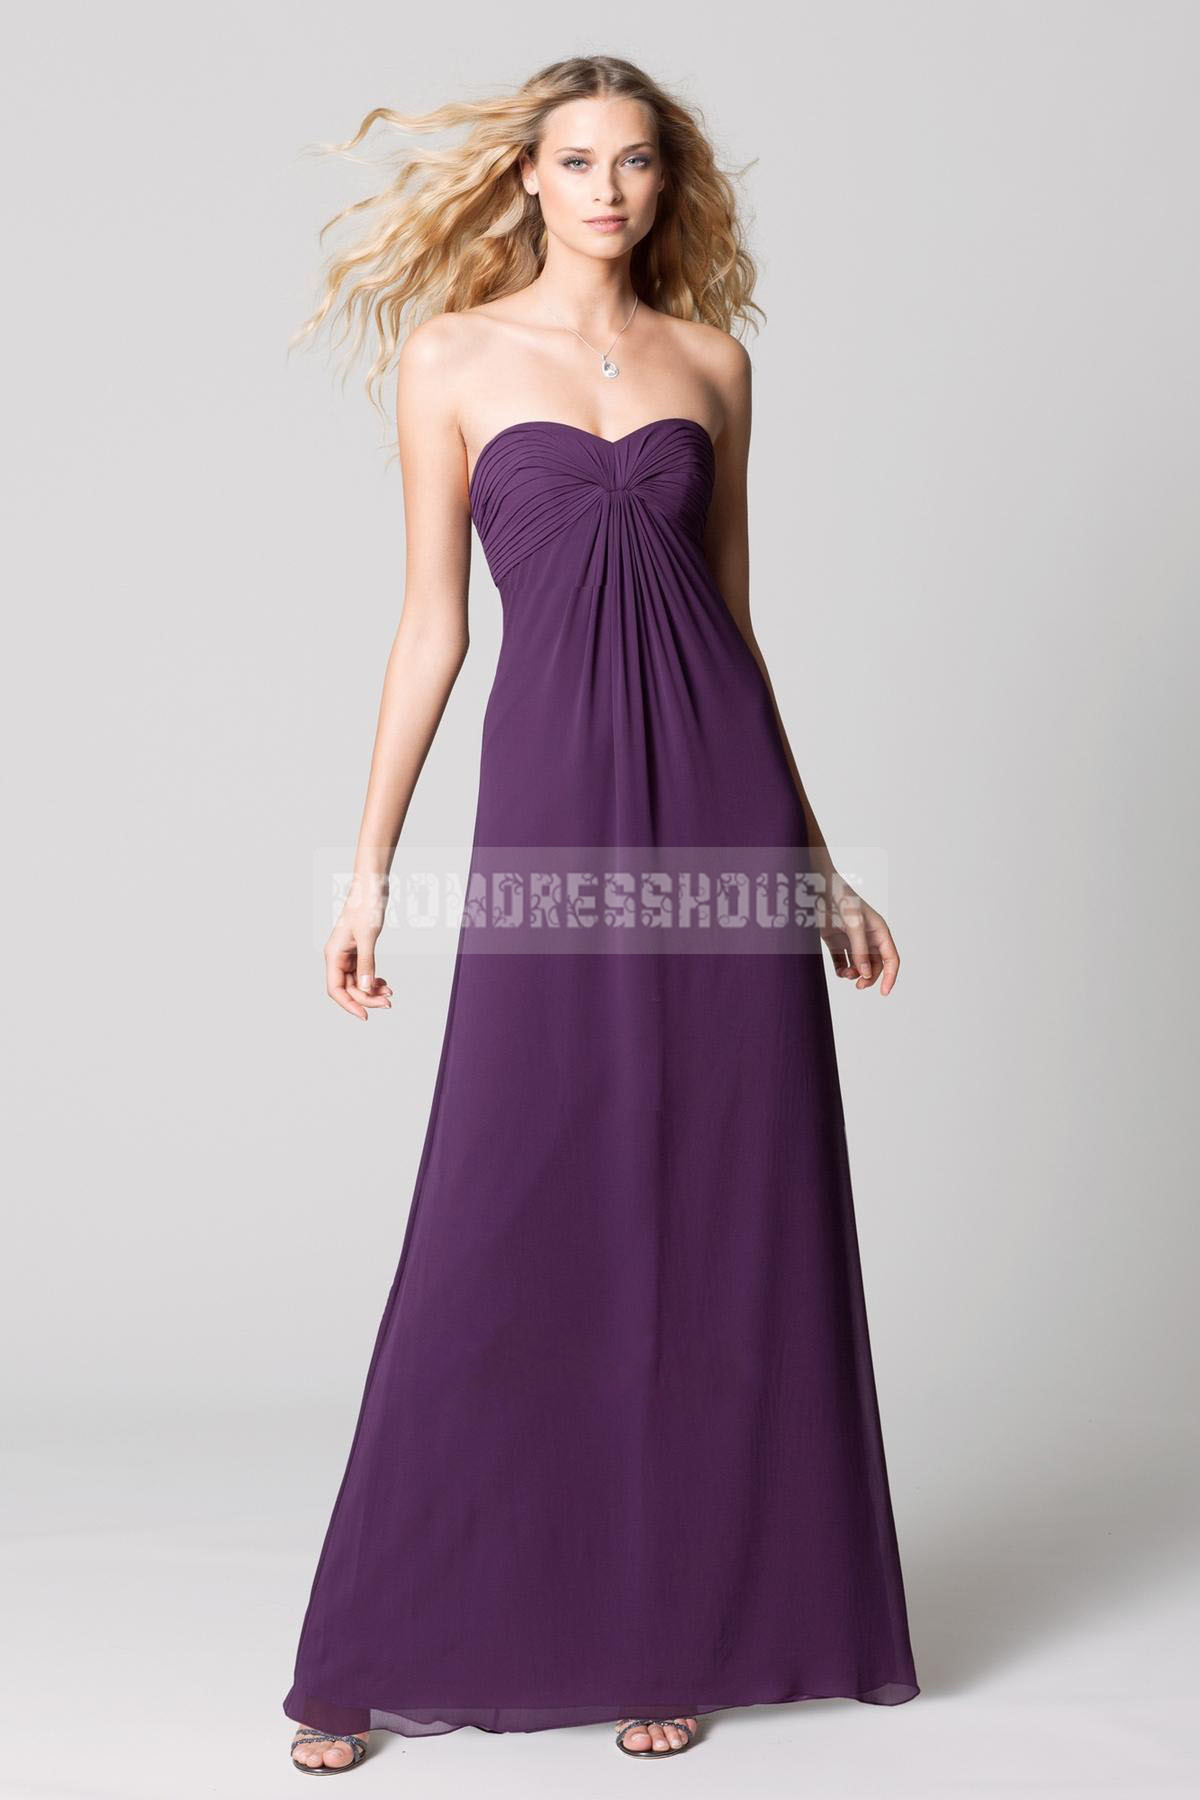 Classical Chiffon Long Grape Strapless A-line Ruched Bridesmaid Dress - Promdresshouse.com